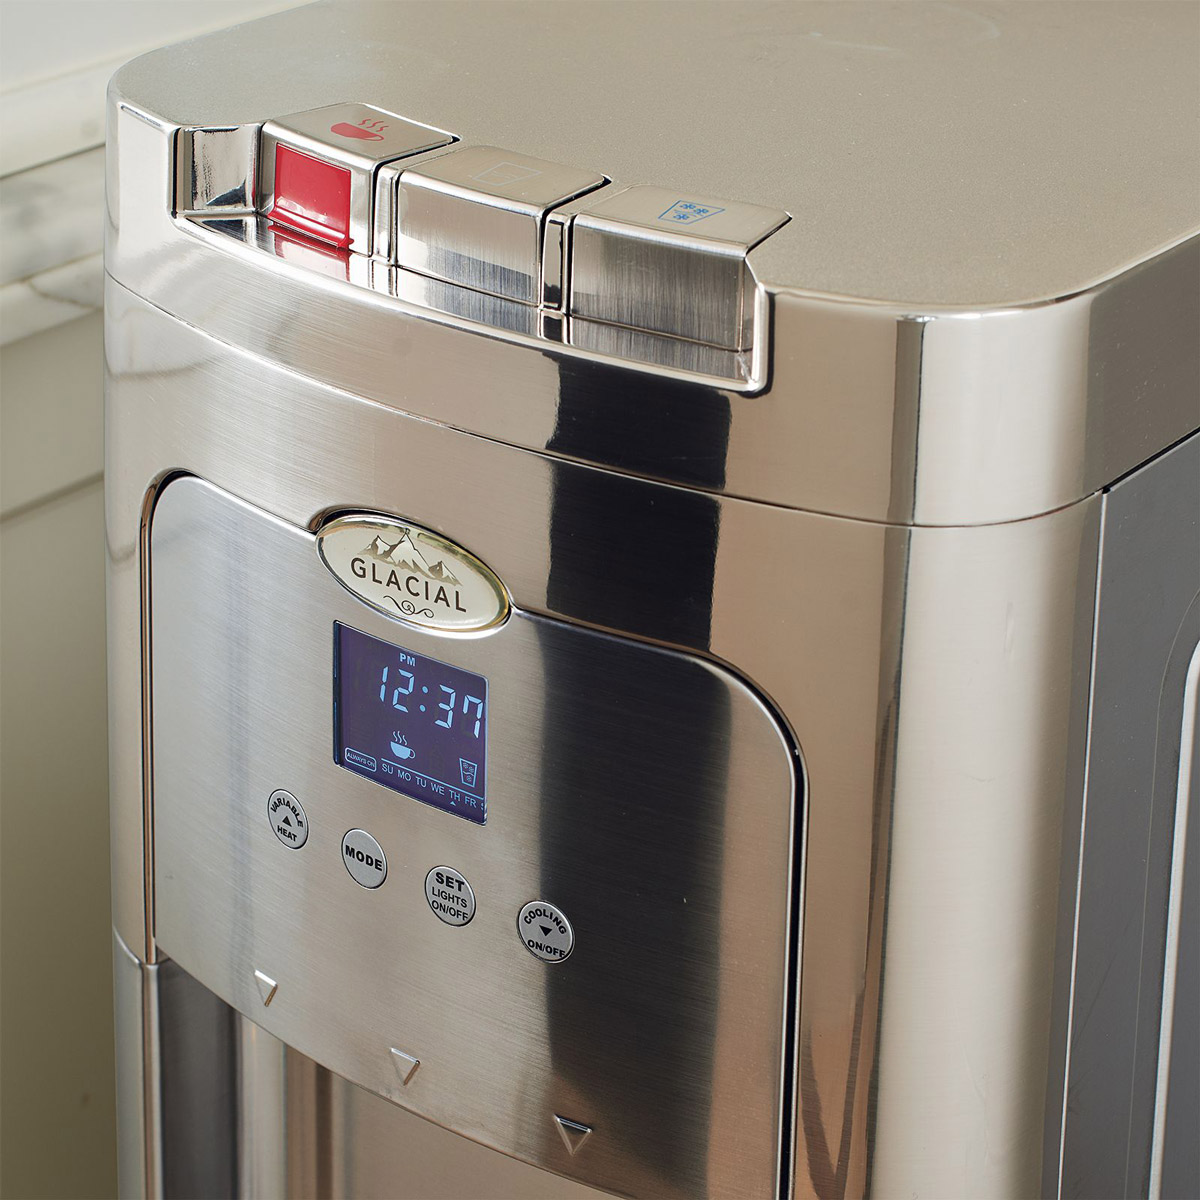 Glacial Maximum Stainless Steel Self Cleaning Bottom Load Watercooler on Sanitizing Toys